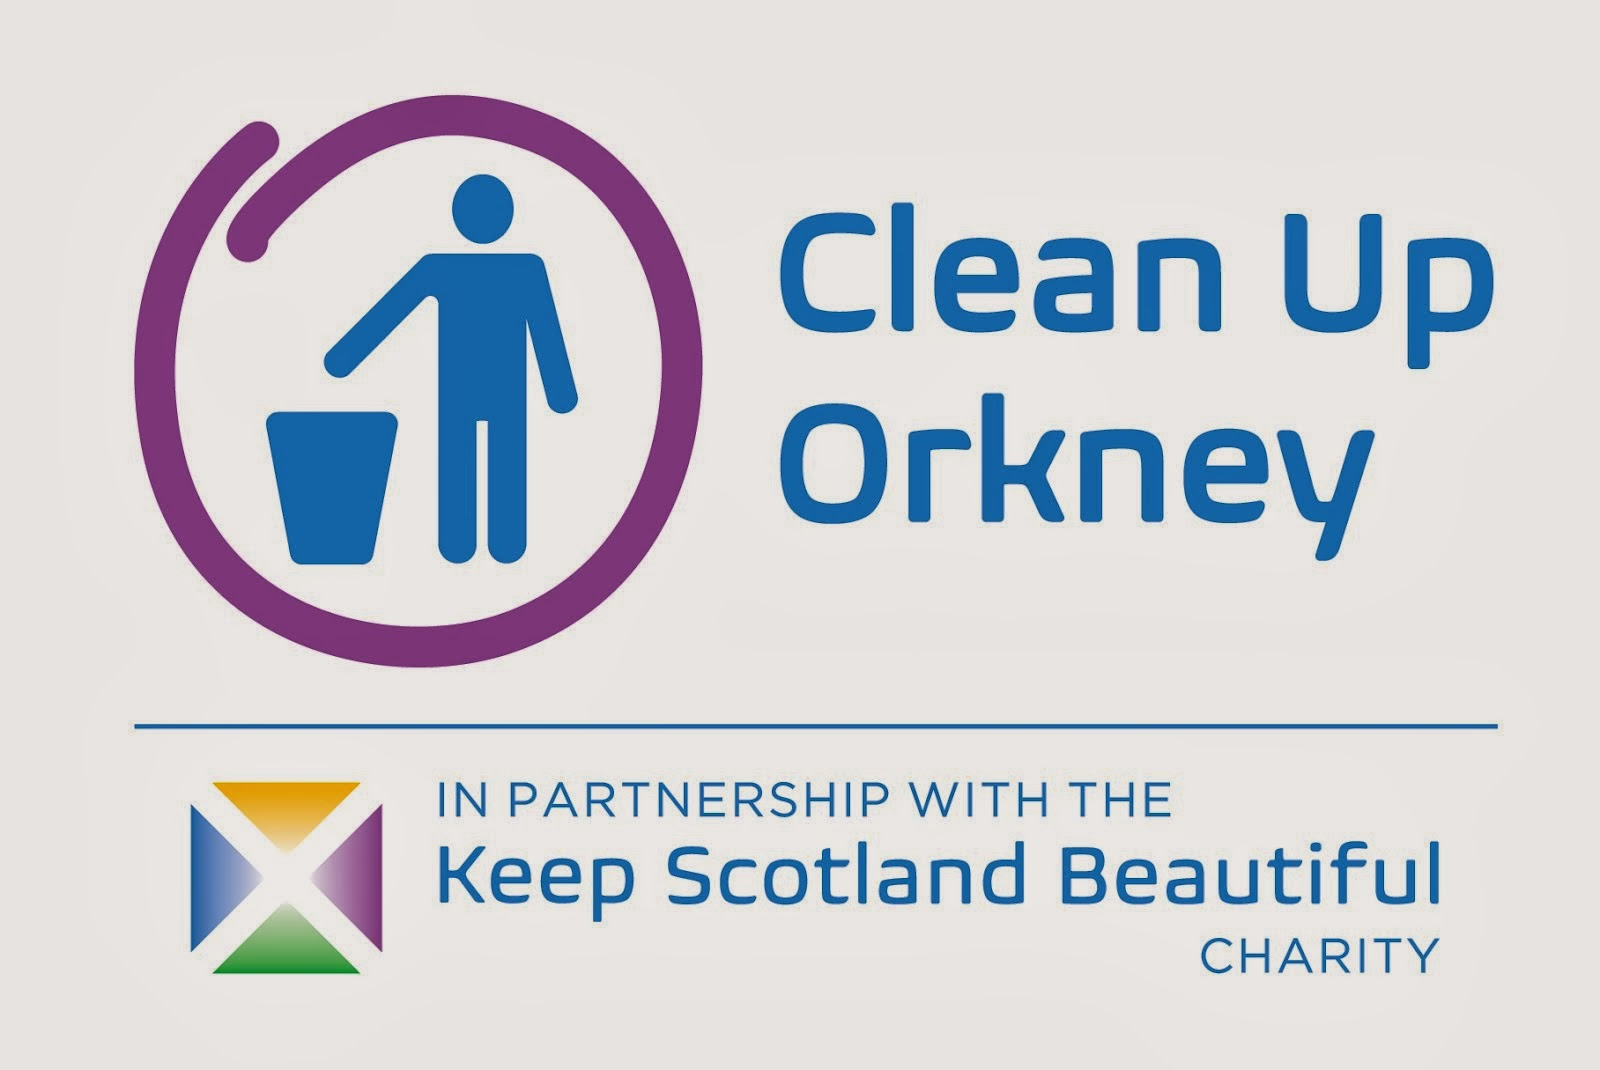 Clean Up Orkney!